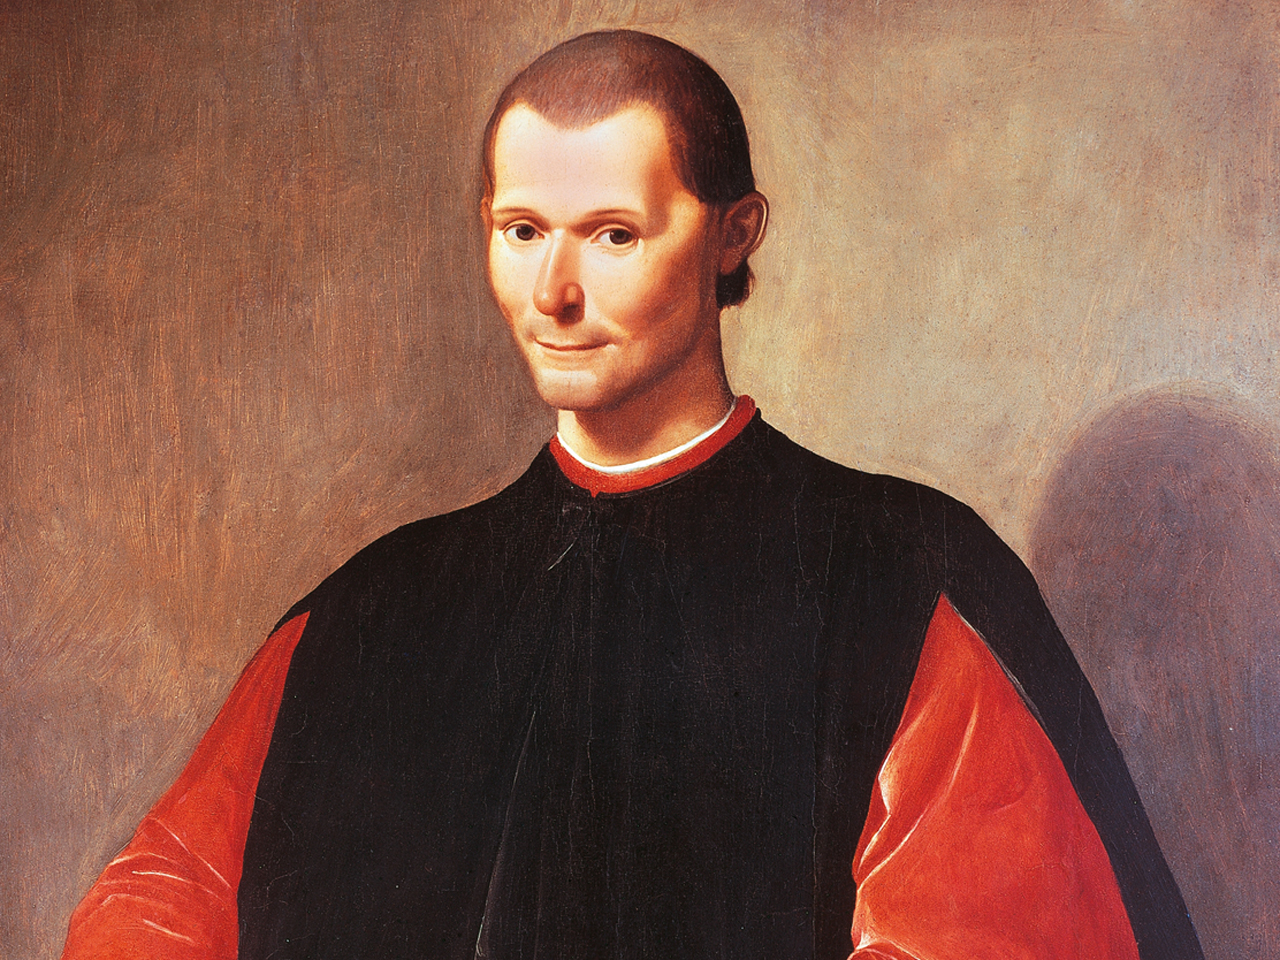 essays on the prince by machiavelli The prince study guide contains a biography of niccolo machiavelli, literature essays, a complete e-text, quiz questions, major themes, characters, and a full summary.